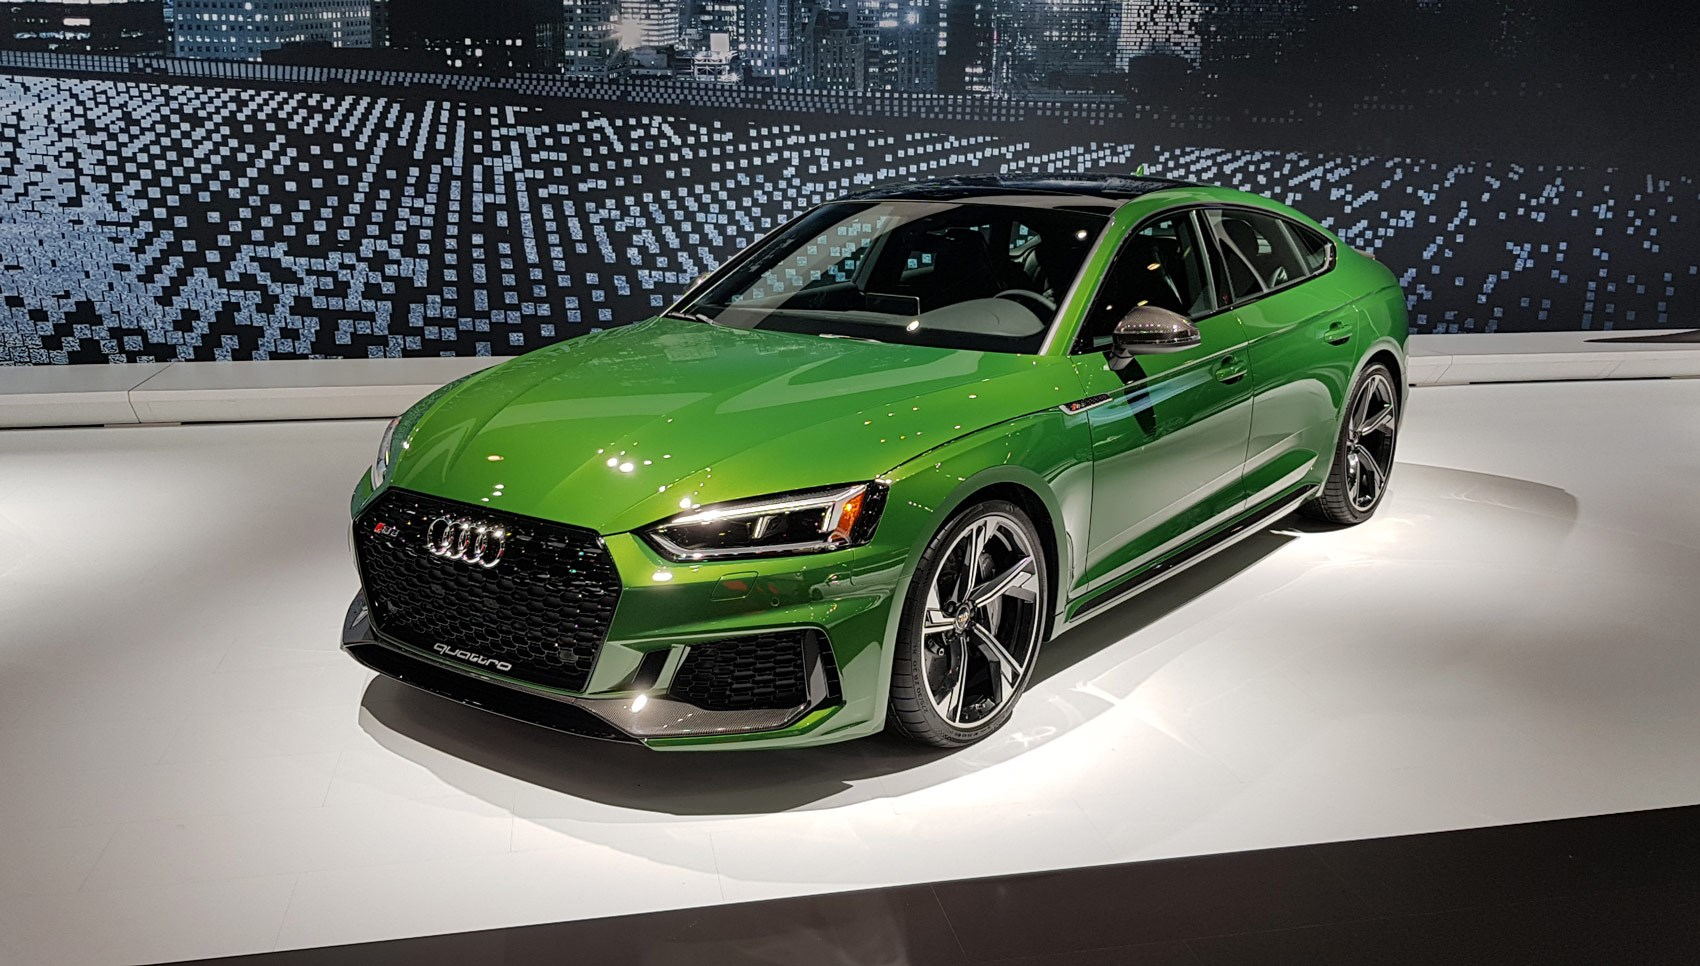 The New Audi Rs5 Sportback At Its York World Debut